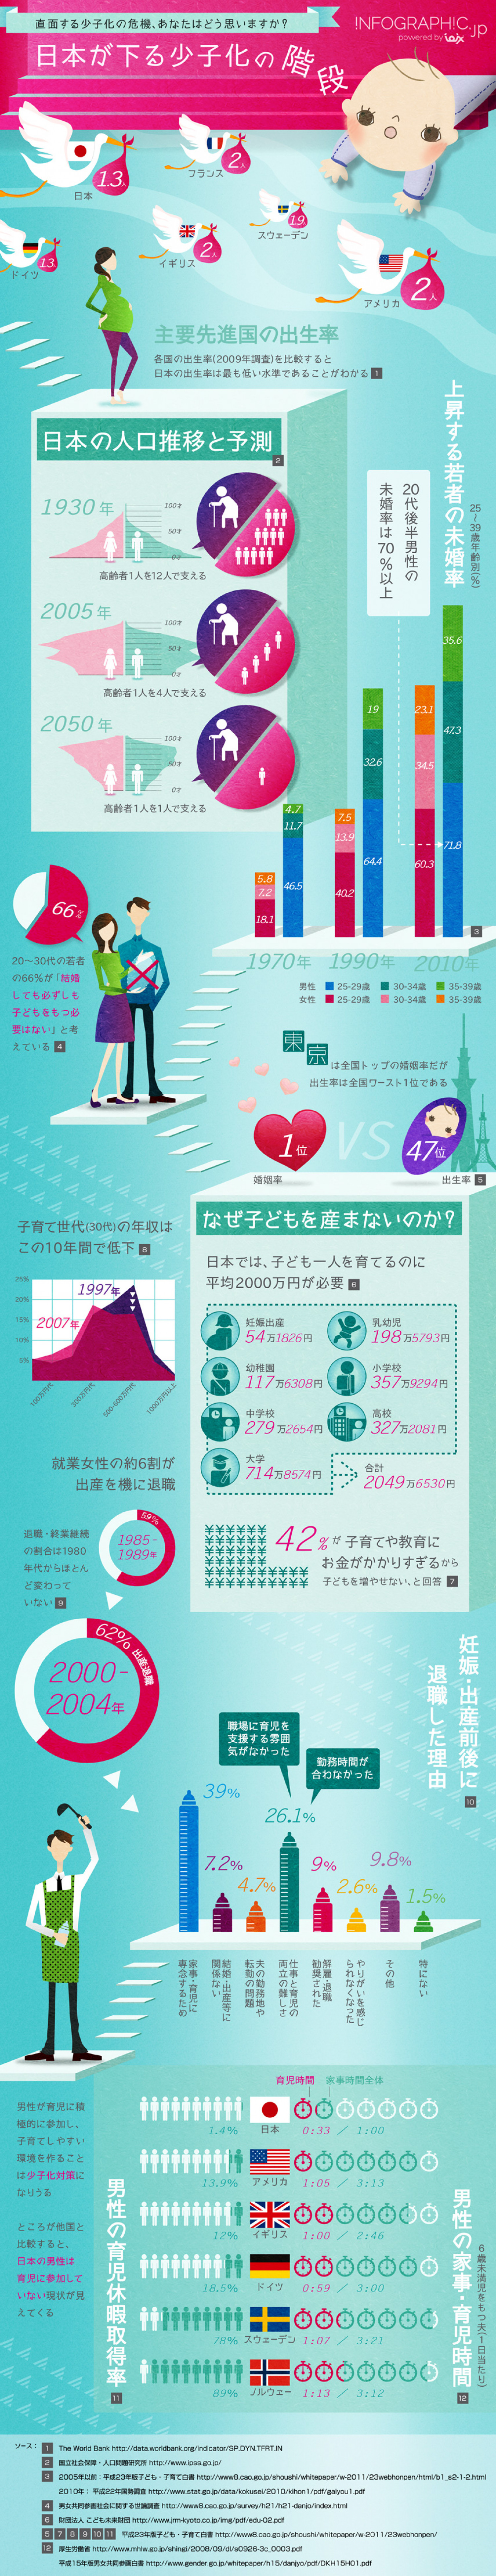 Decreasing Number Of Children in Japan Infographic